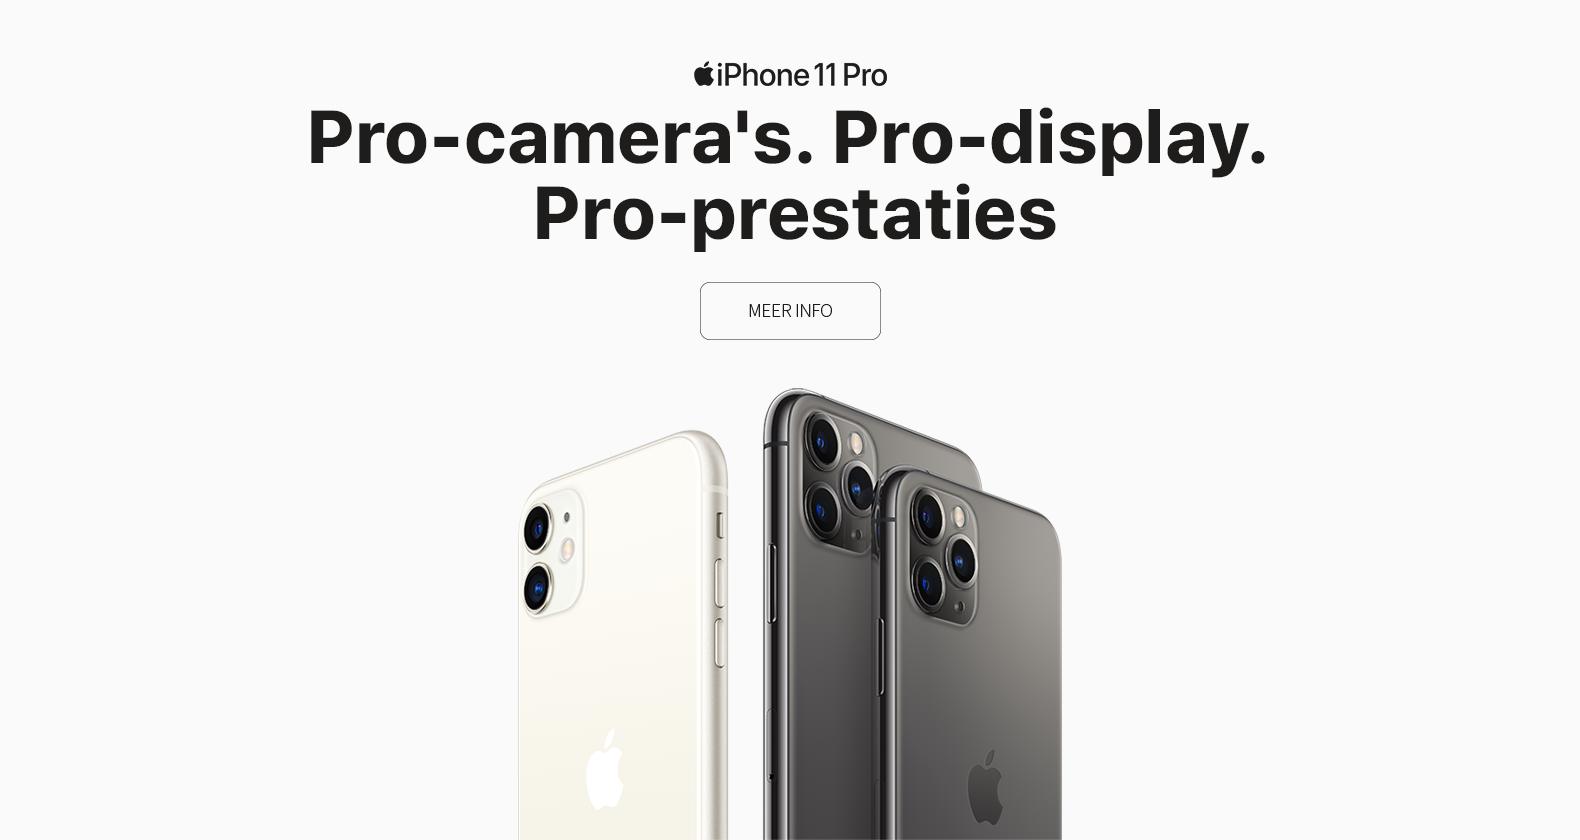 iPhone11Pro-visual-2-3_1580x0.png